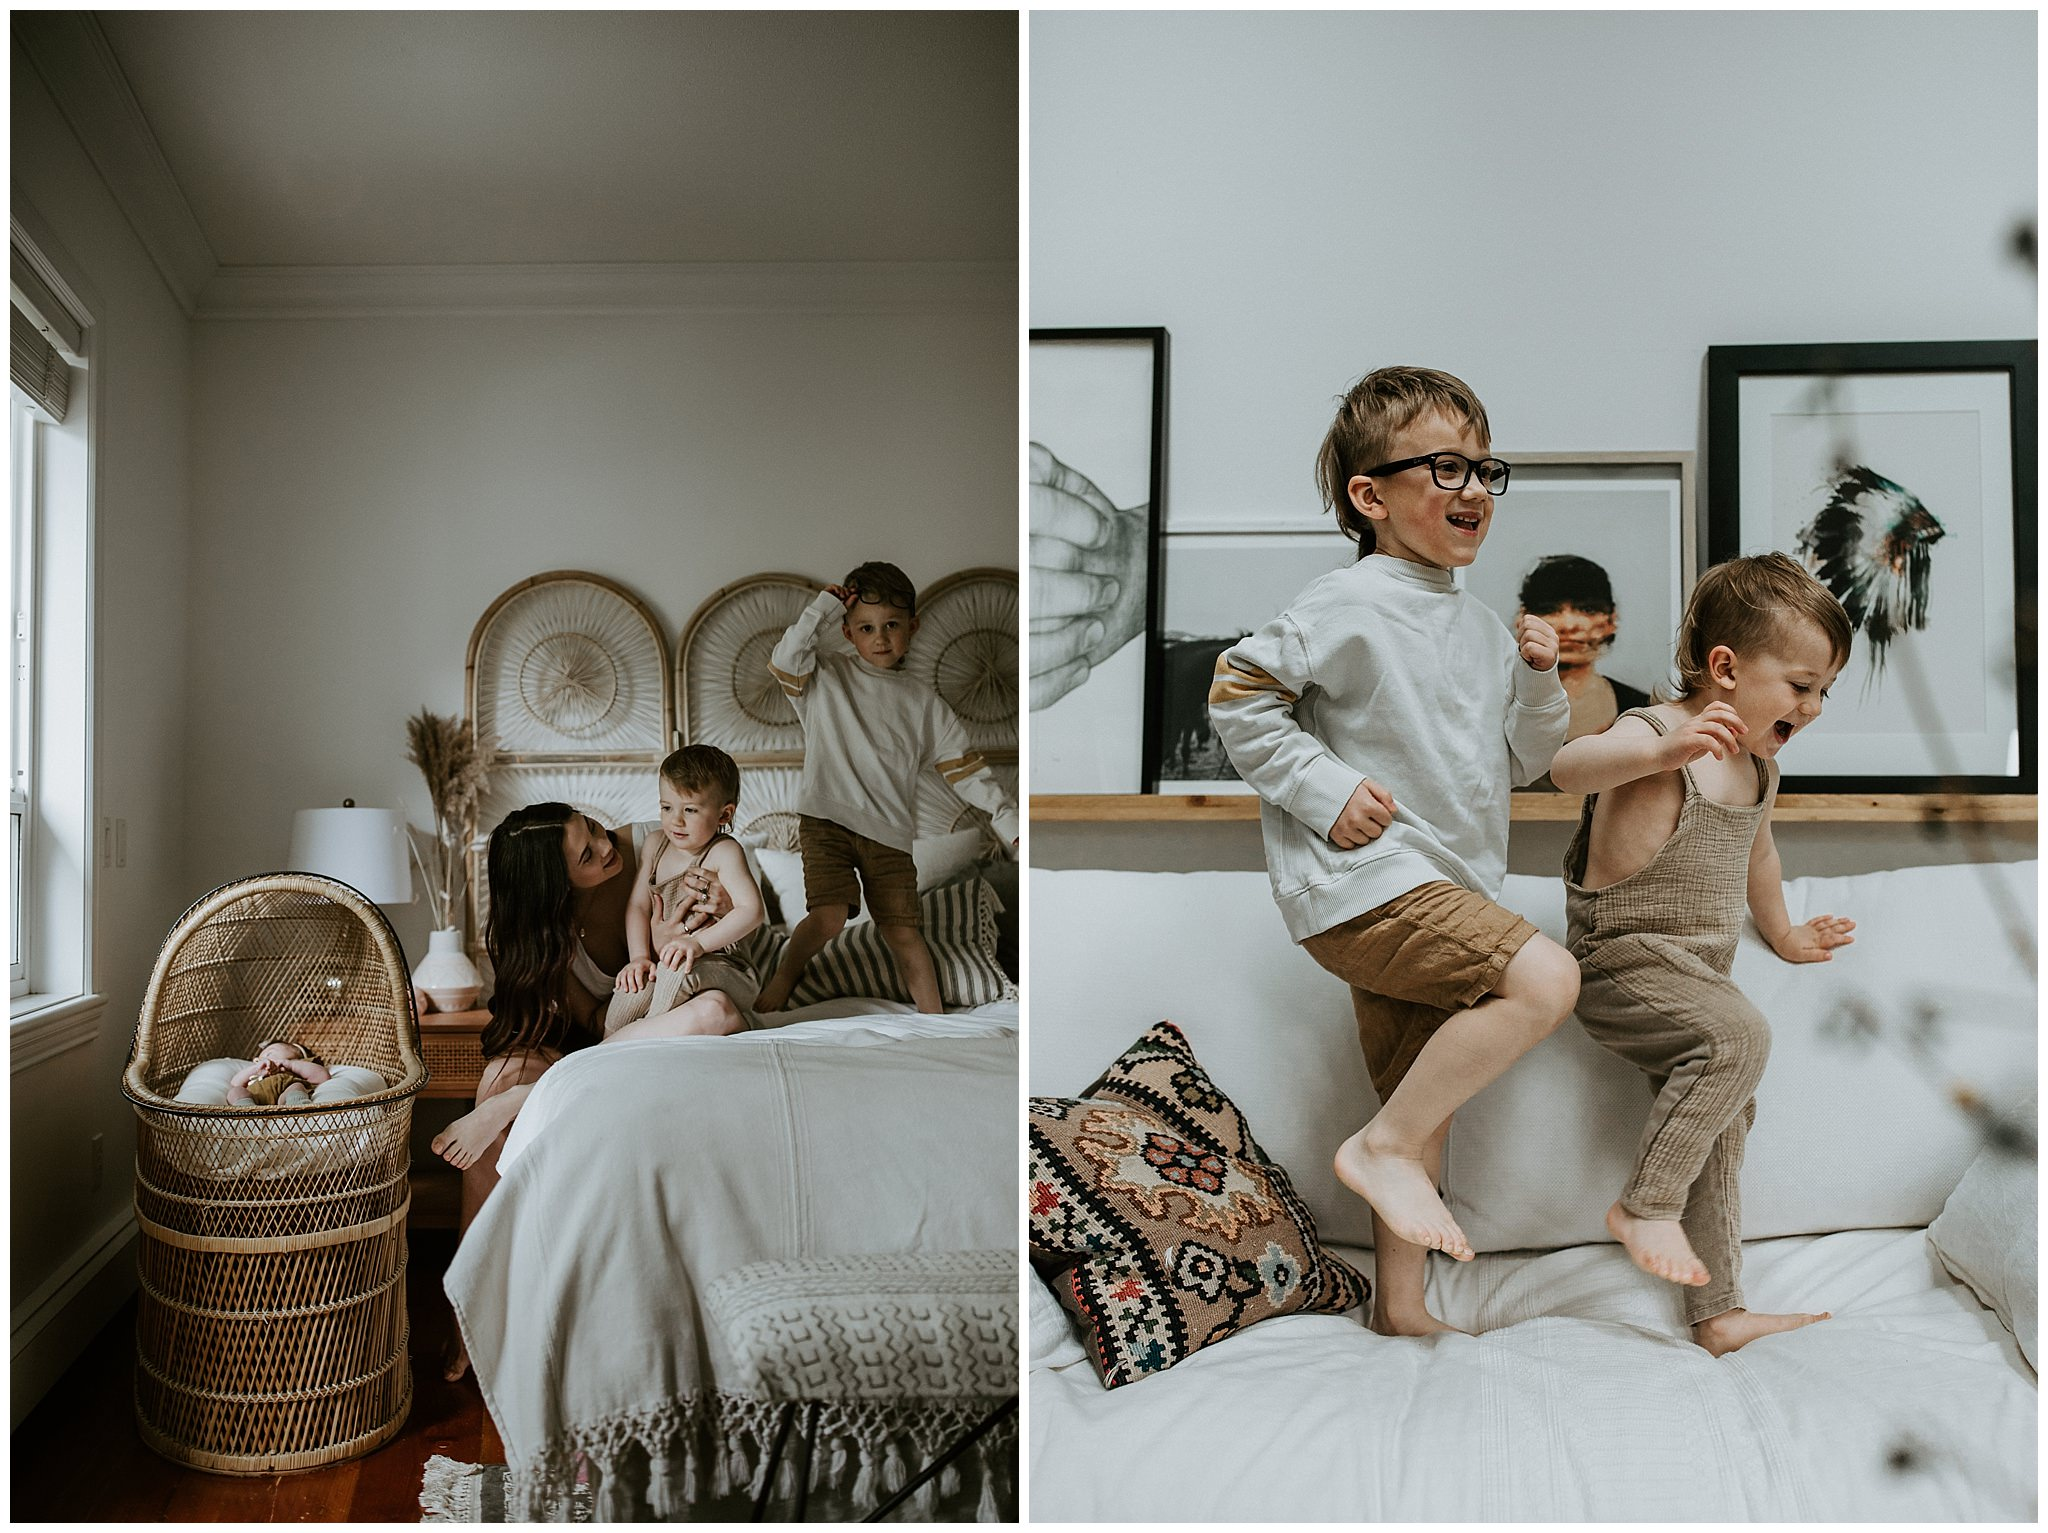 langley-in-home-family-photography-032.JPG